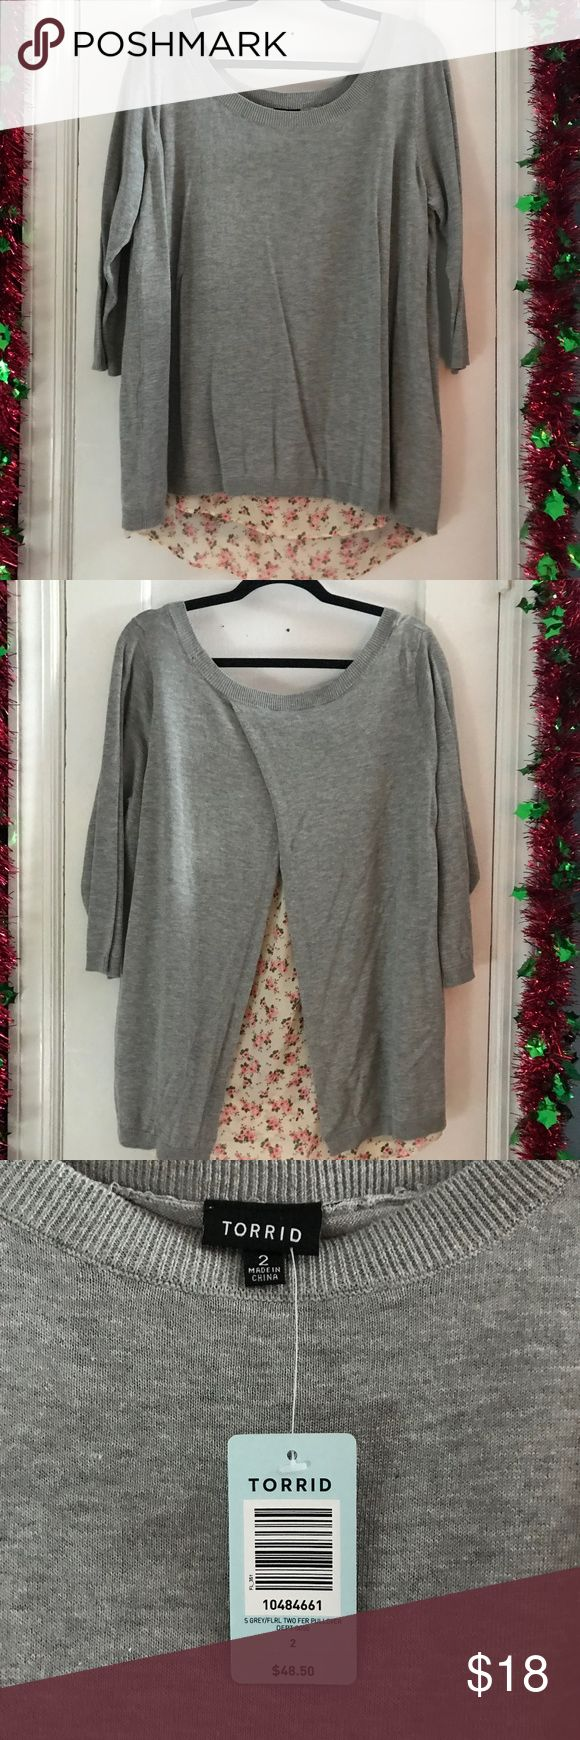 Torrid Floral Knit Layered Sweater Size 2